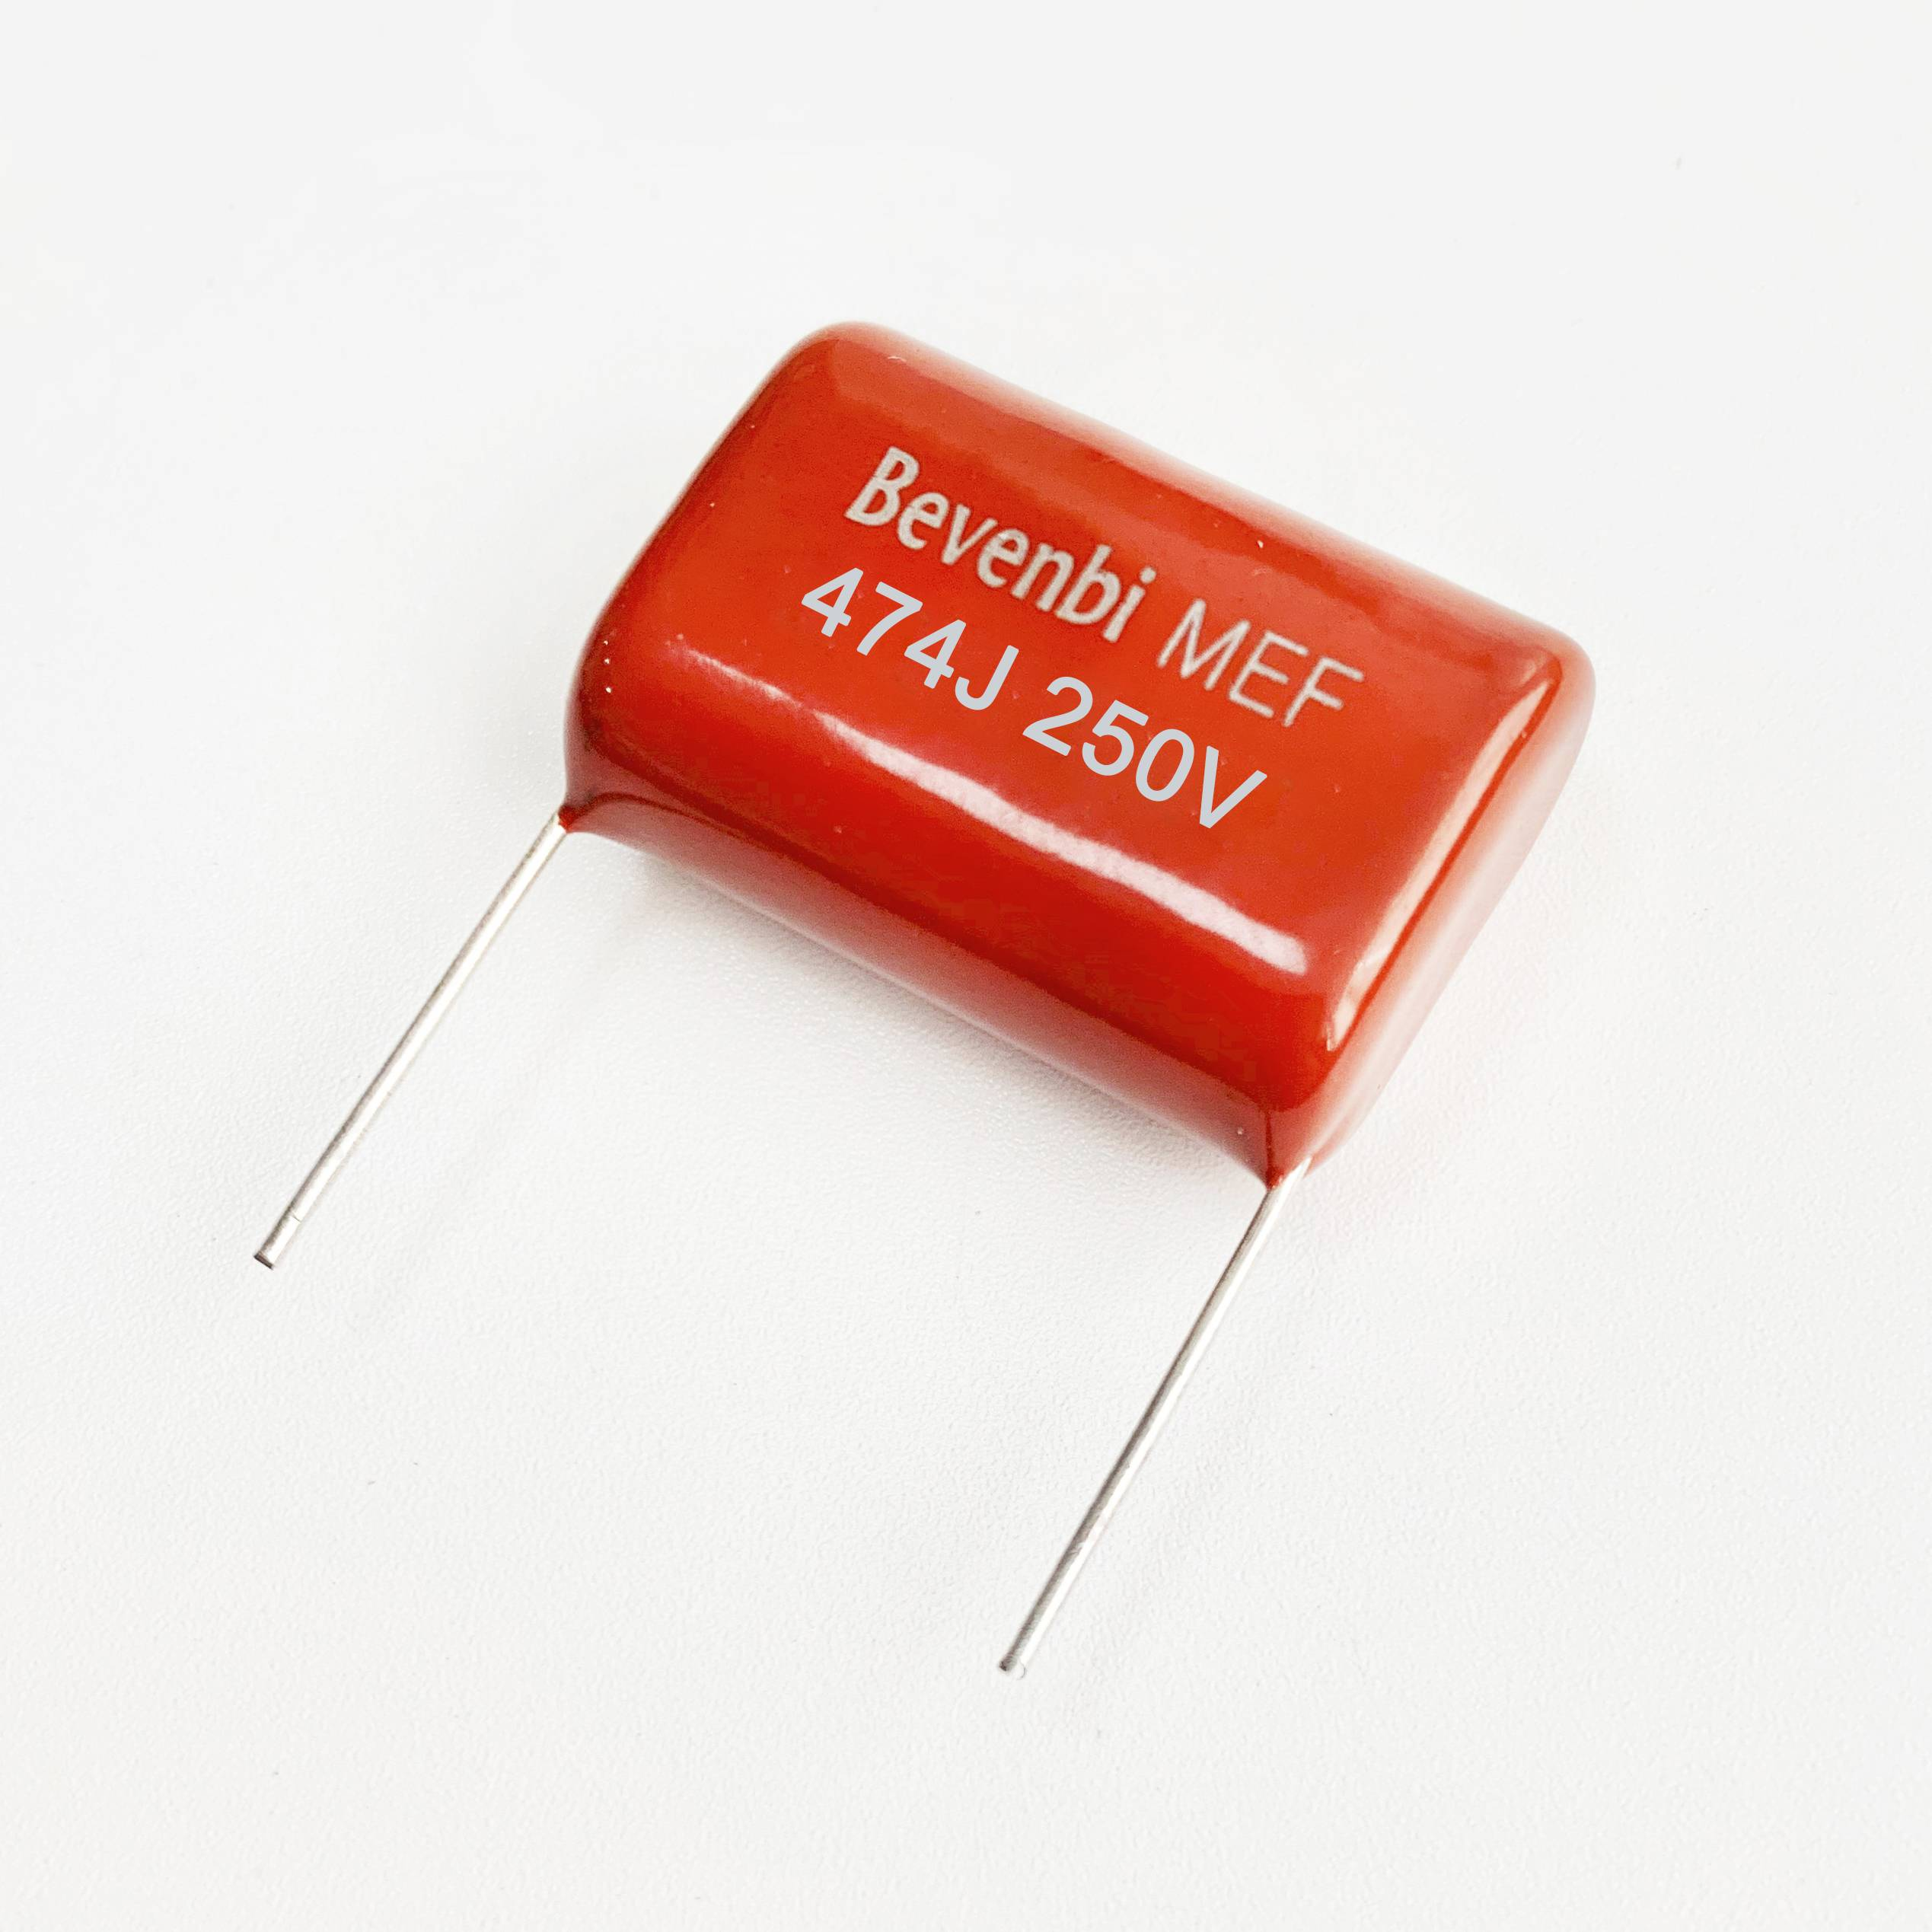 Cl21 Bevenbi metallized polyester film capacitor red radial type MEF Featured Image